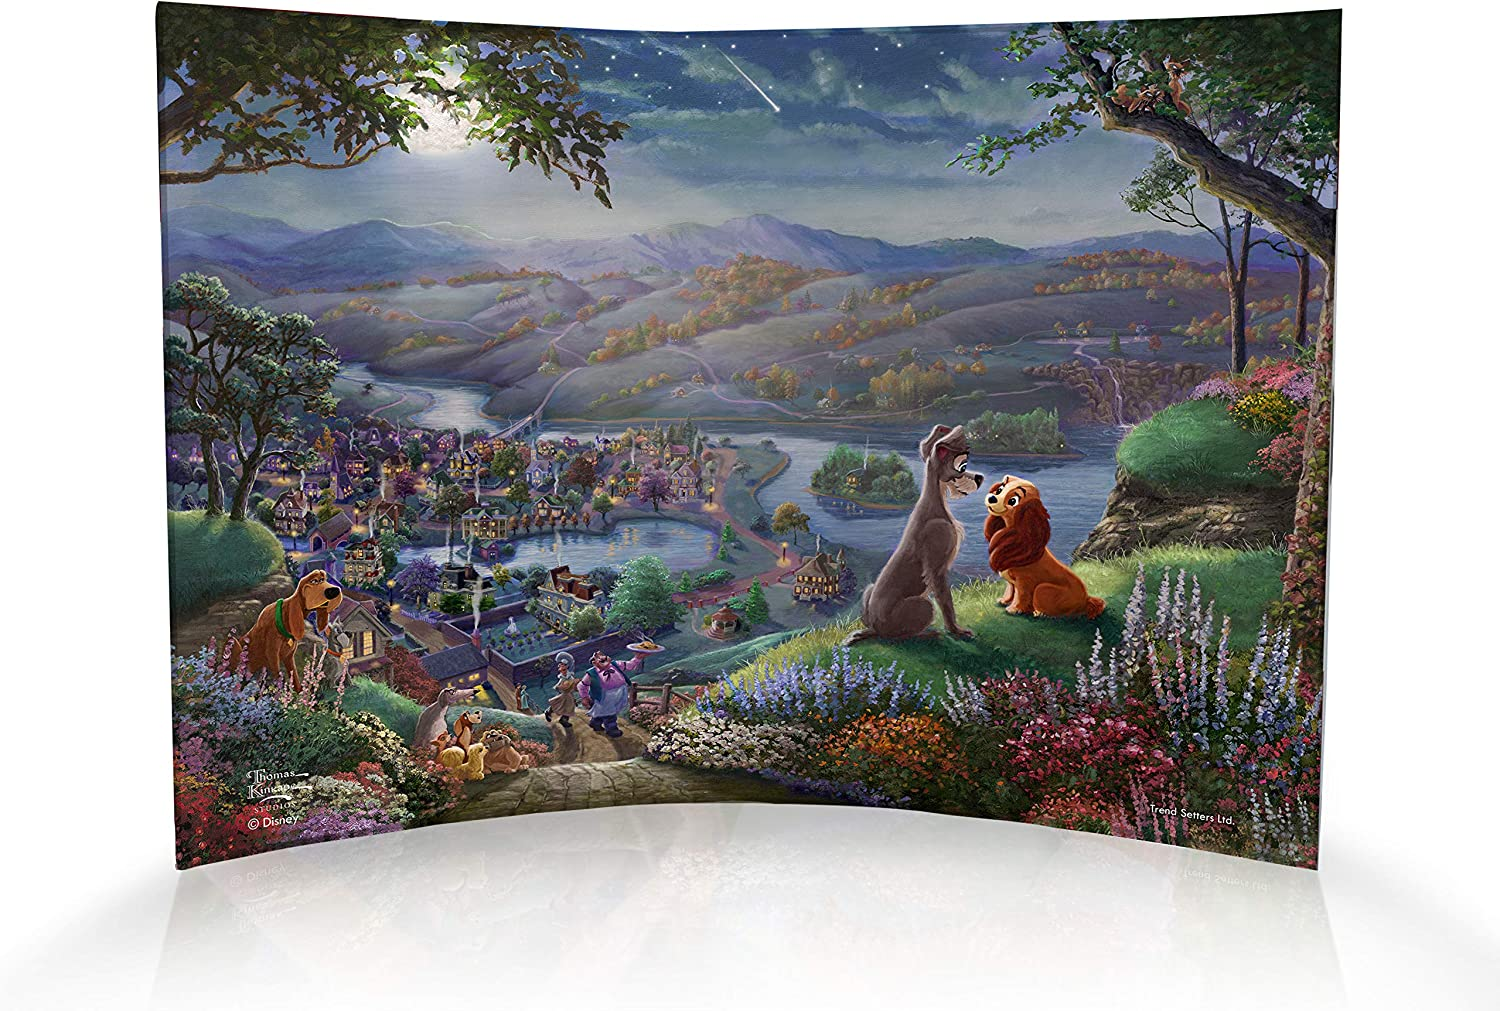 Amazon Com Trend Setters Disney Lady And The Tramp Tony And Friends Thomas Kinkade 10 X 7 Curved Acrylic Photo Print Free Standing Light Catching Photo Decor Ltd